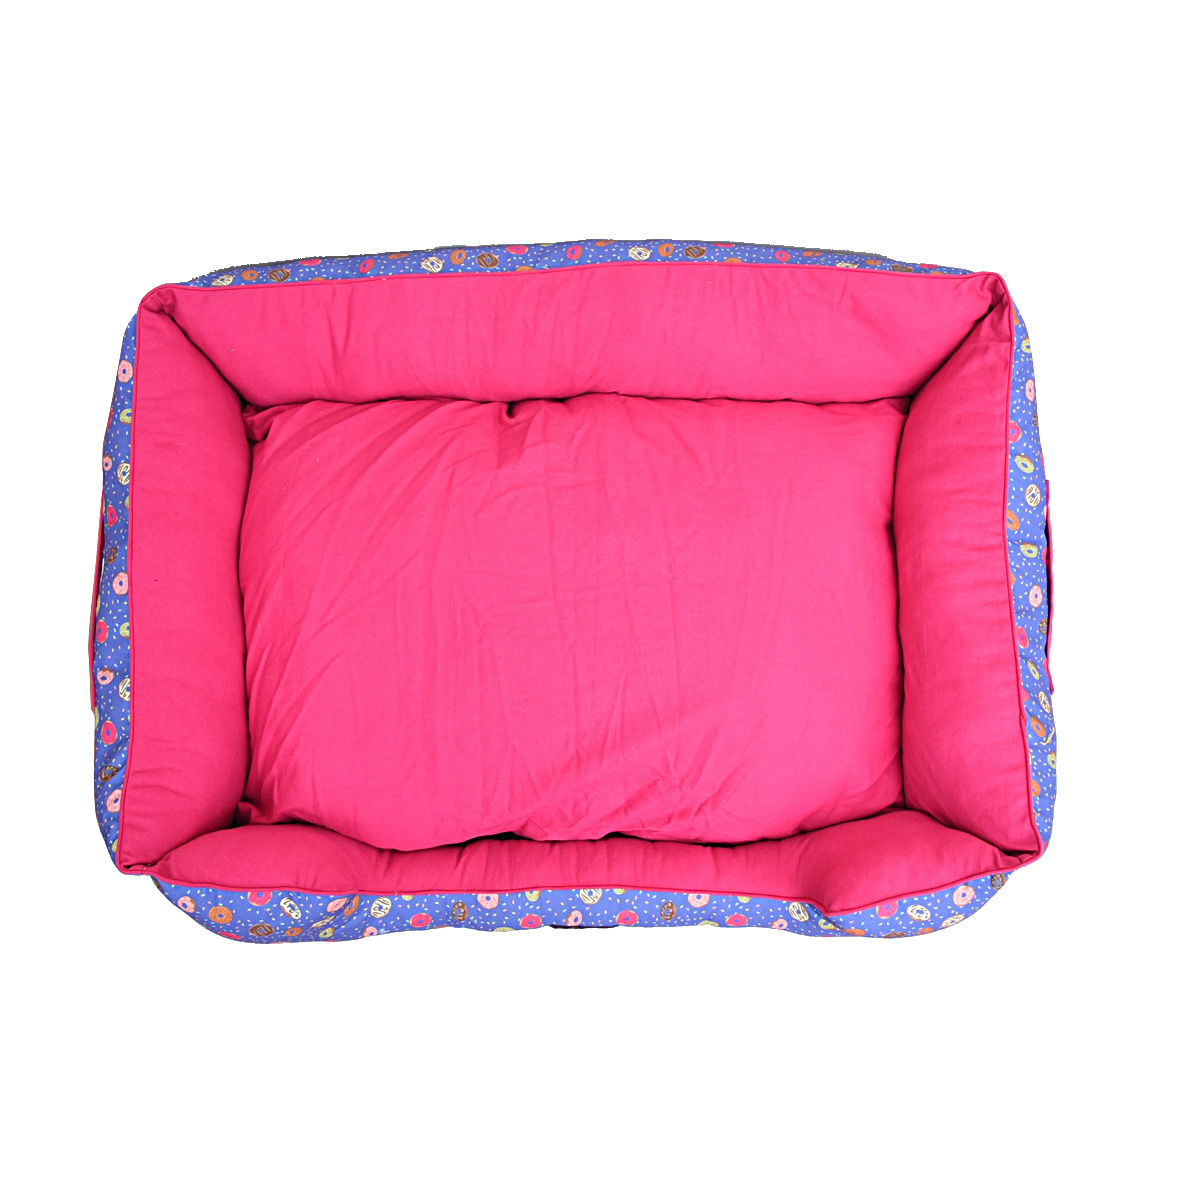 Mutt Of Course Lounger Bed For Dogs - Donnut Disturb - Large